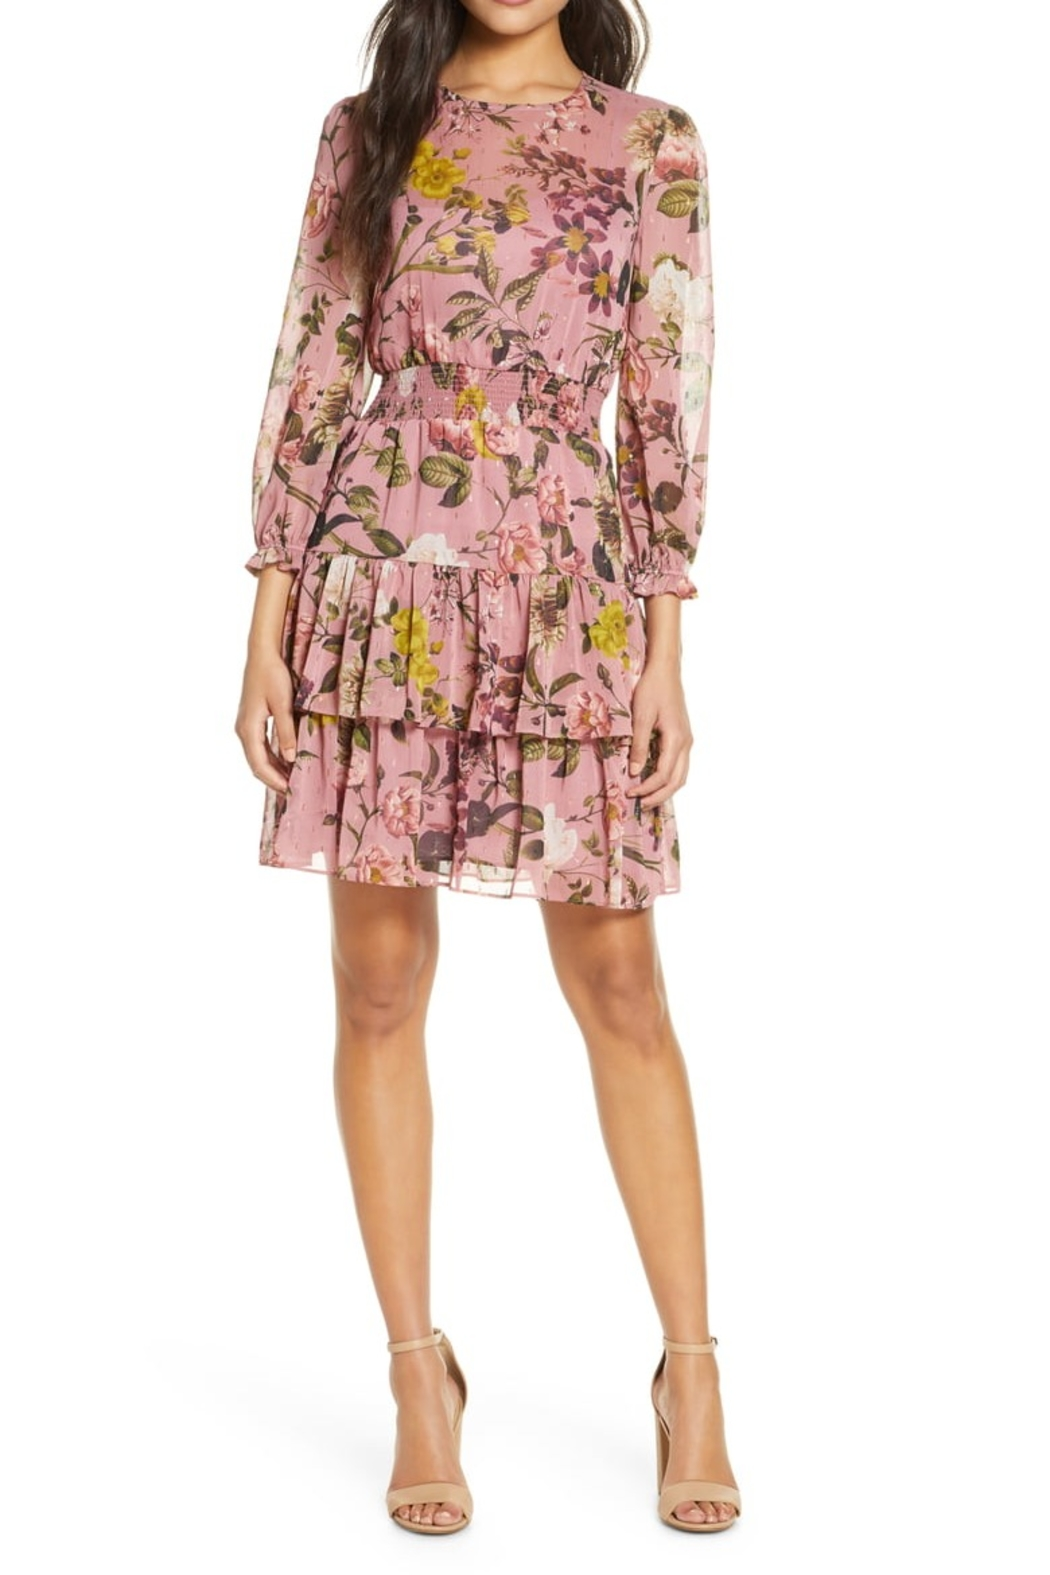 Eliza J Floral Chiffon Long Sleeve Dress with Tiered Skirt - Main Image